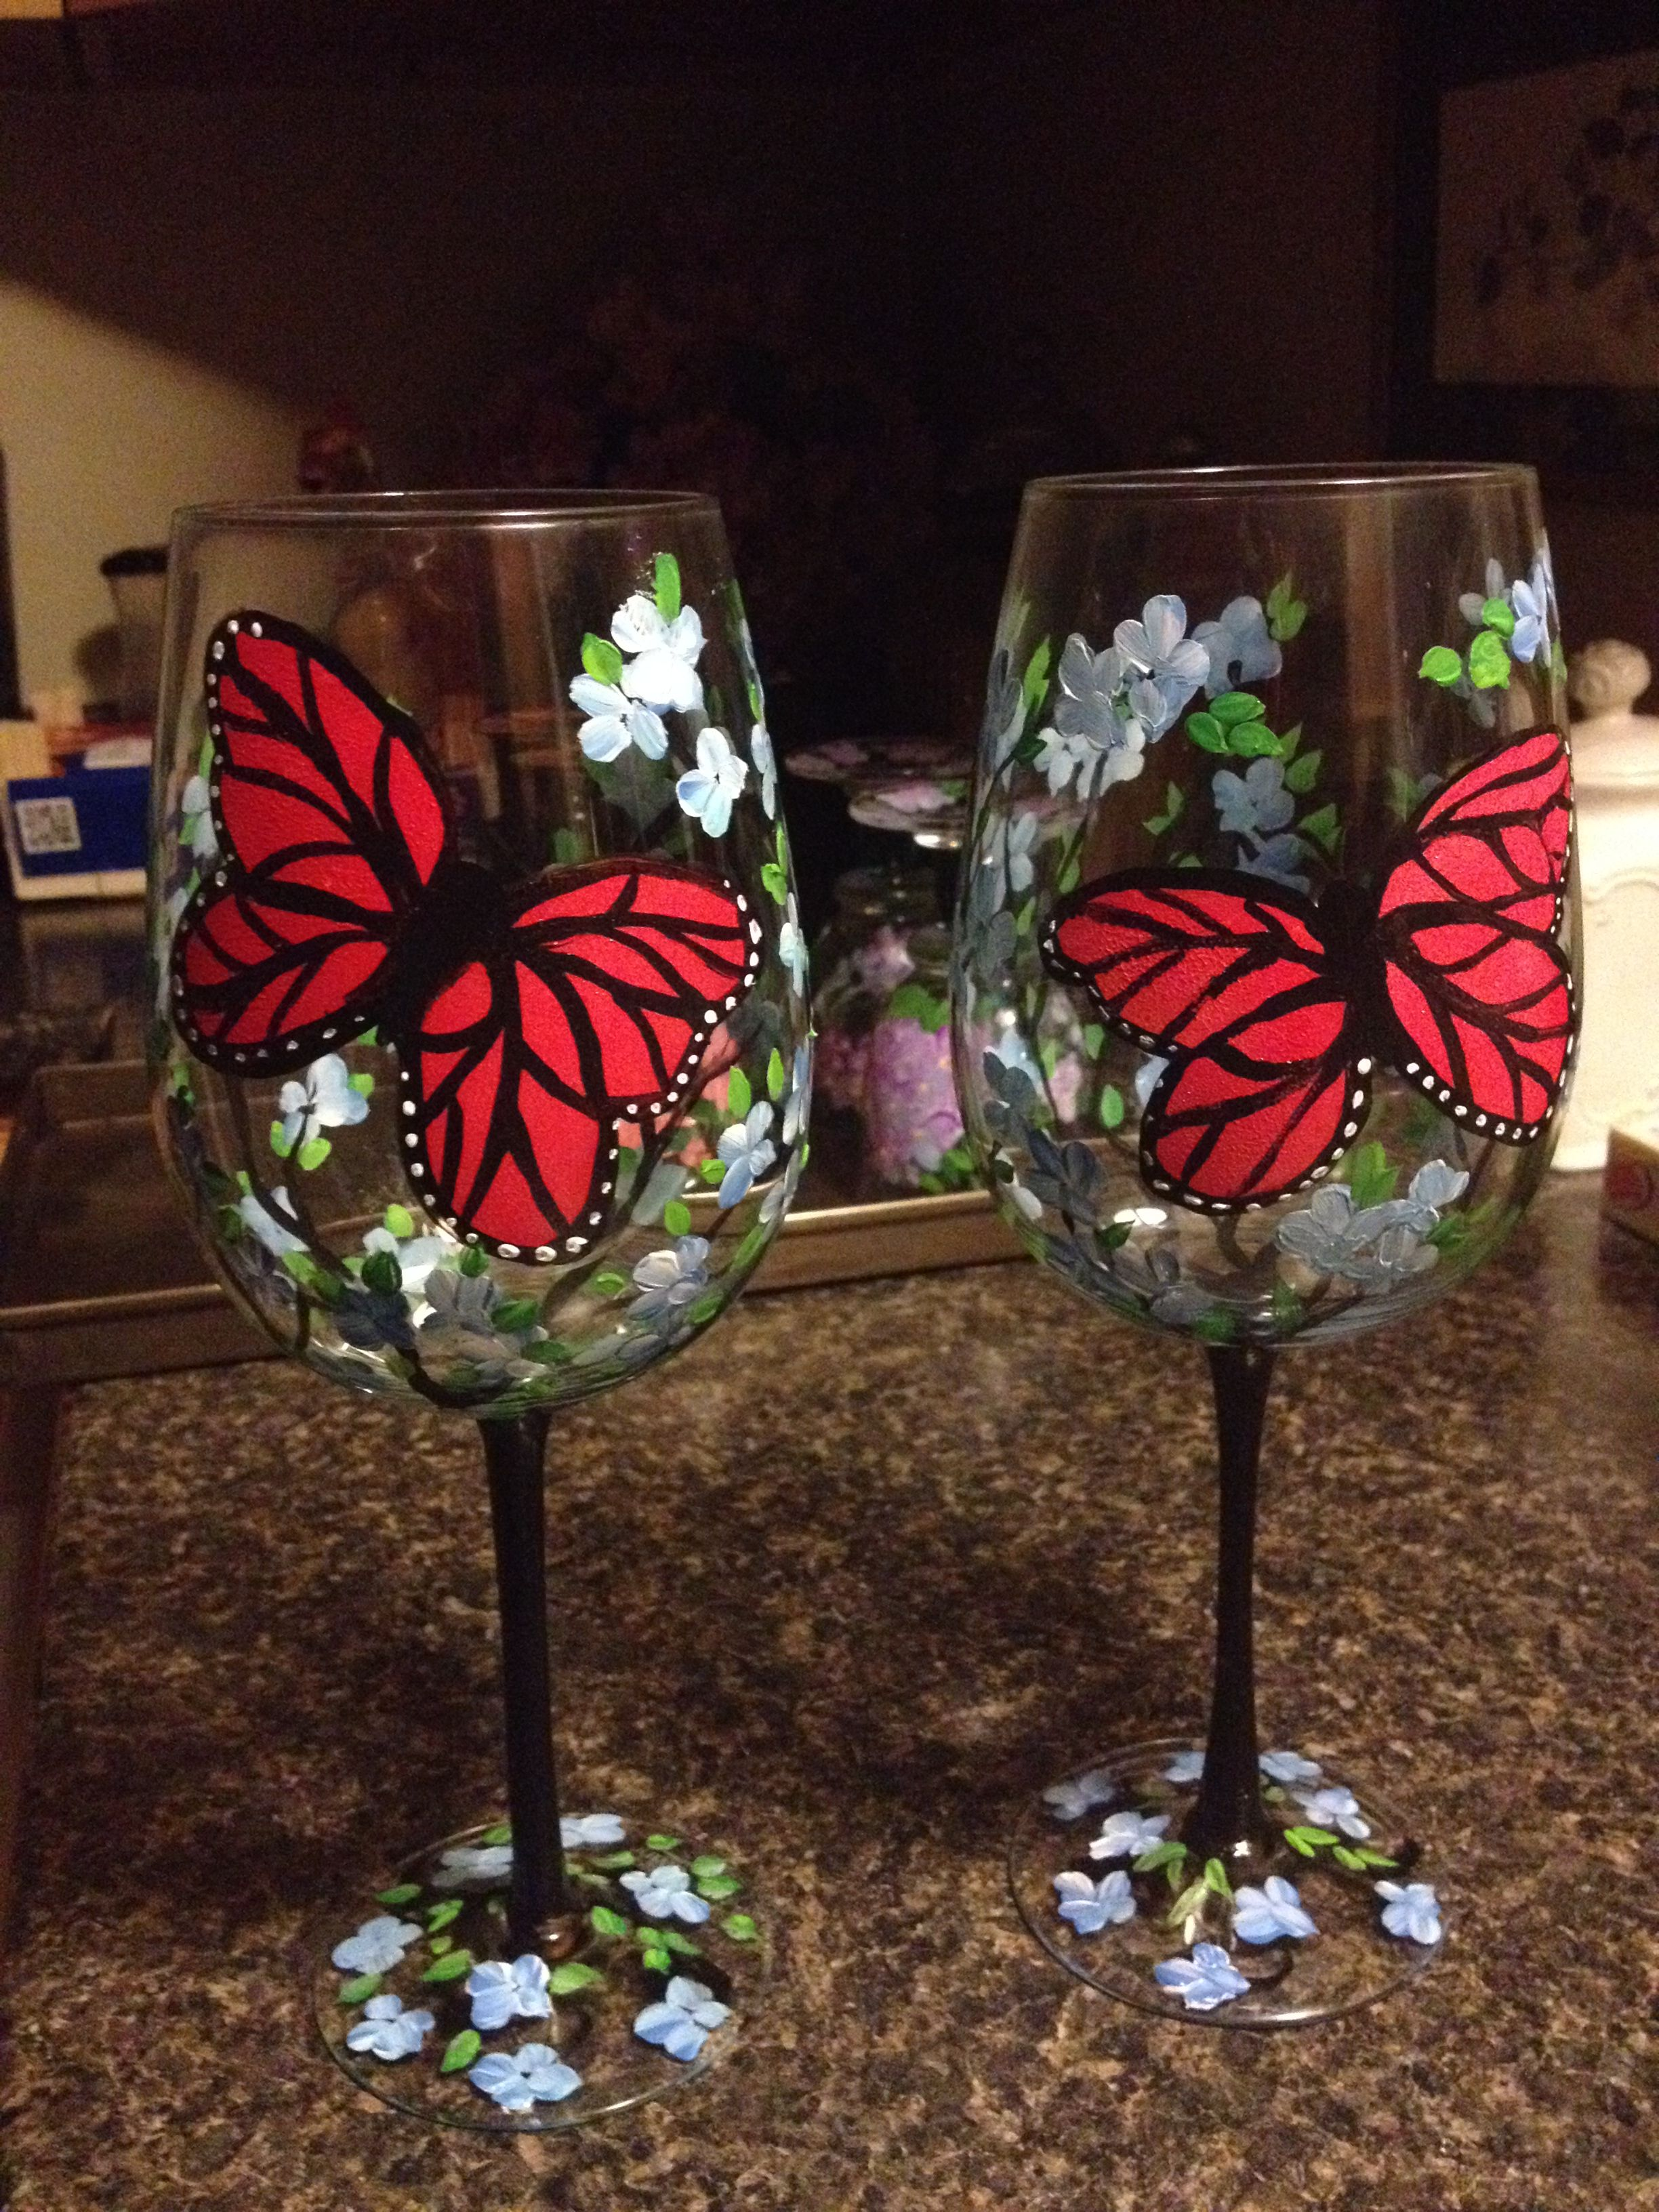 Here S Some Butterfly Wine Glasses I Painted Today With Blue Flowers Wrapped Around Glass And Base A Butterfly Wine Glasses Painted Wine Glass Wine Glasses